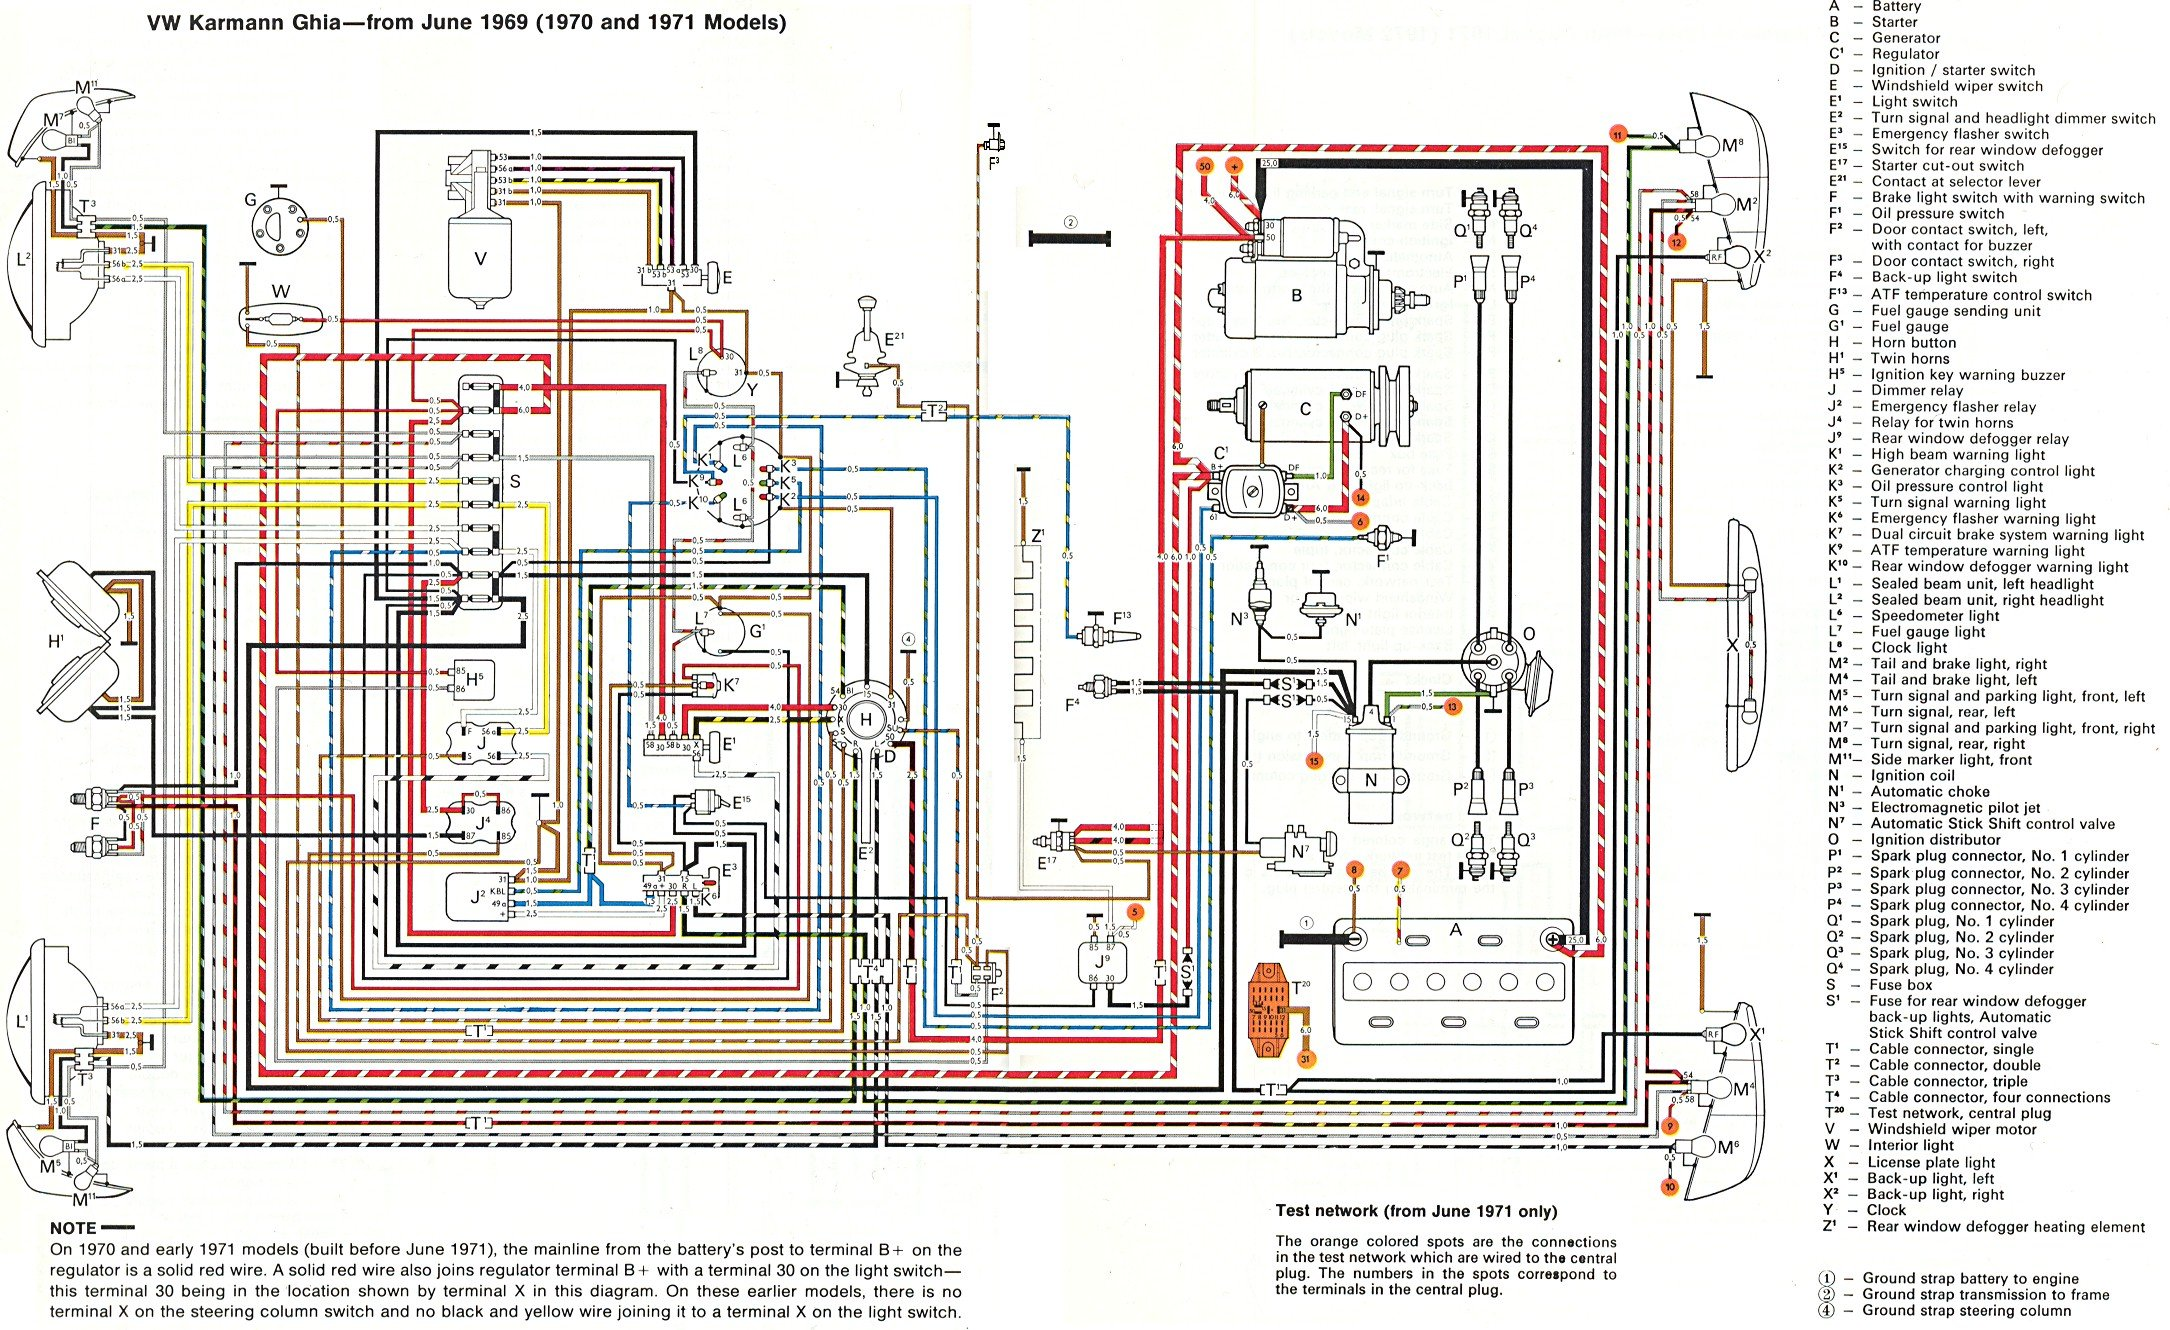 thesamba com karmann ghia wiring diagrams rh thesamba com 2001 Volkswagen Beetle Wiring Diagram 1979 VW Beetle Wiring Diagram